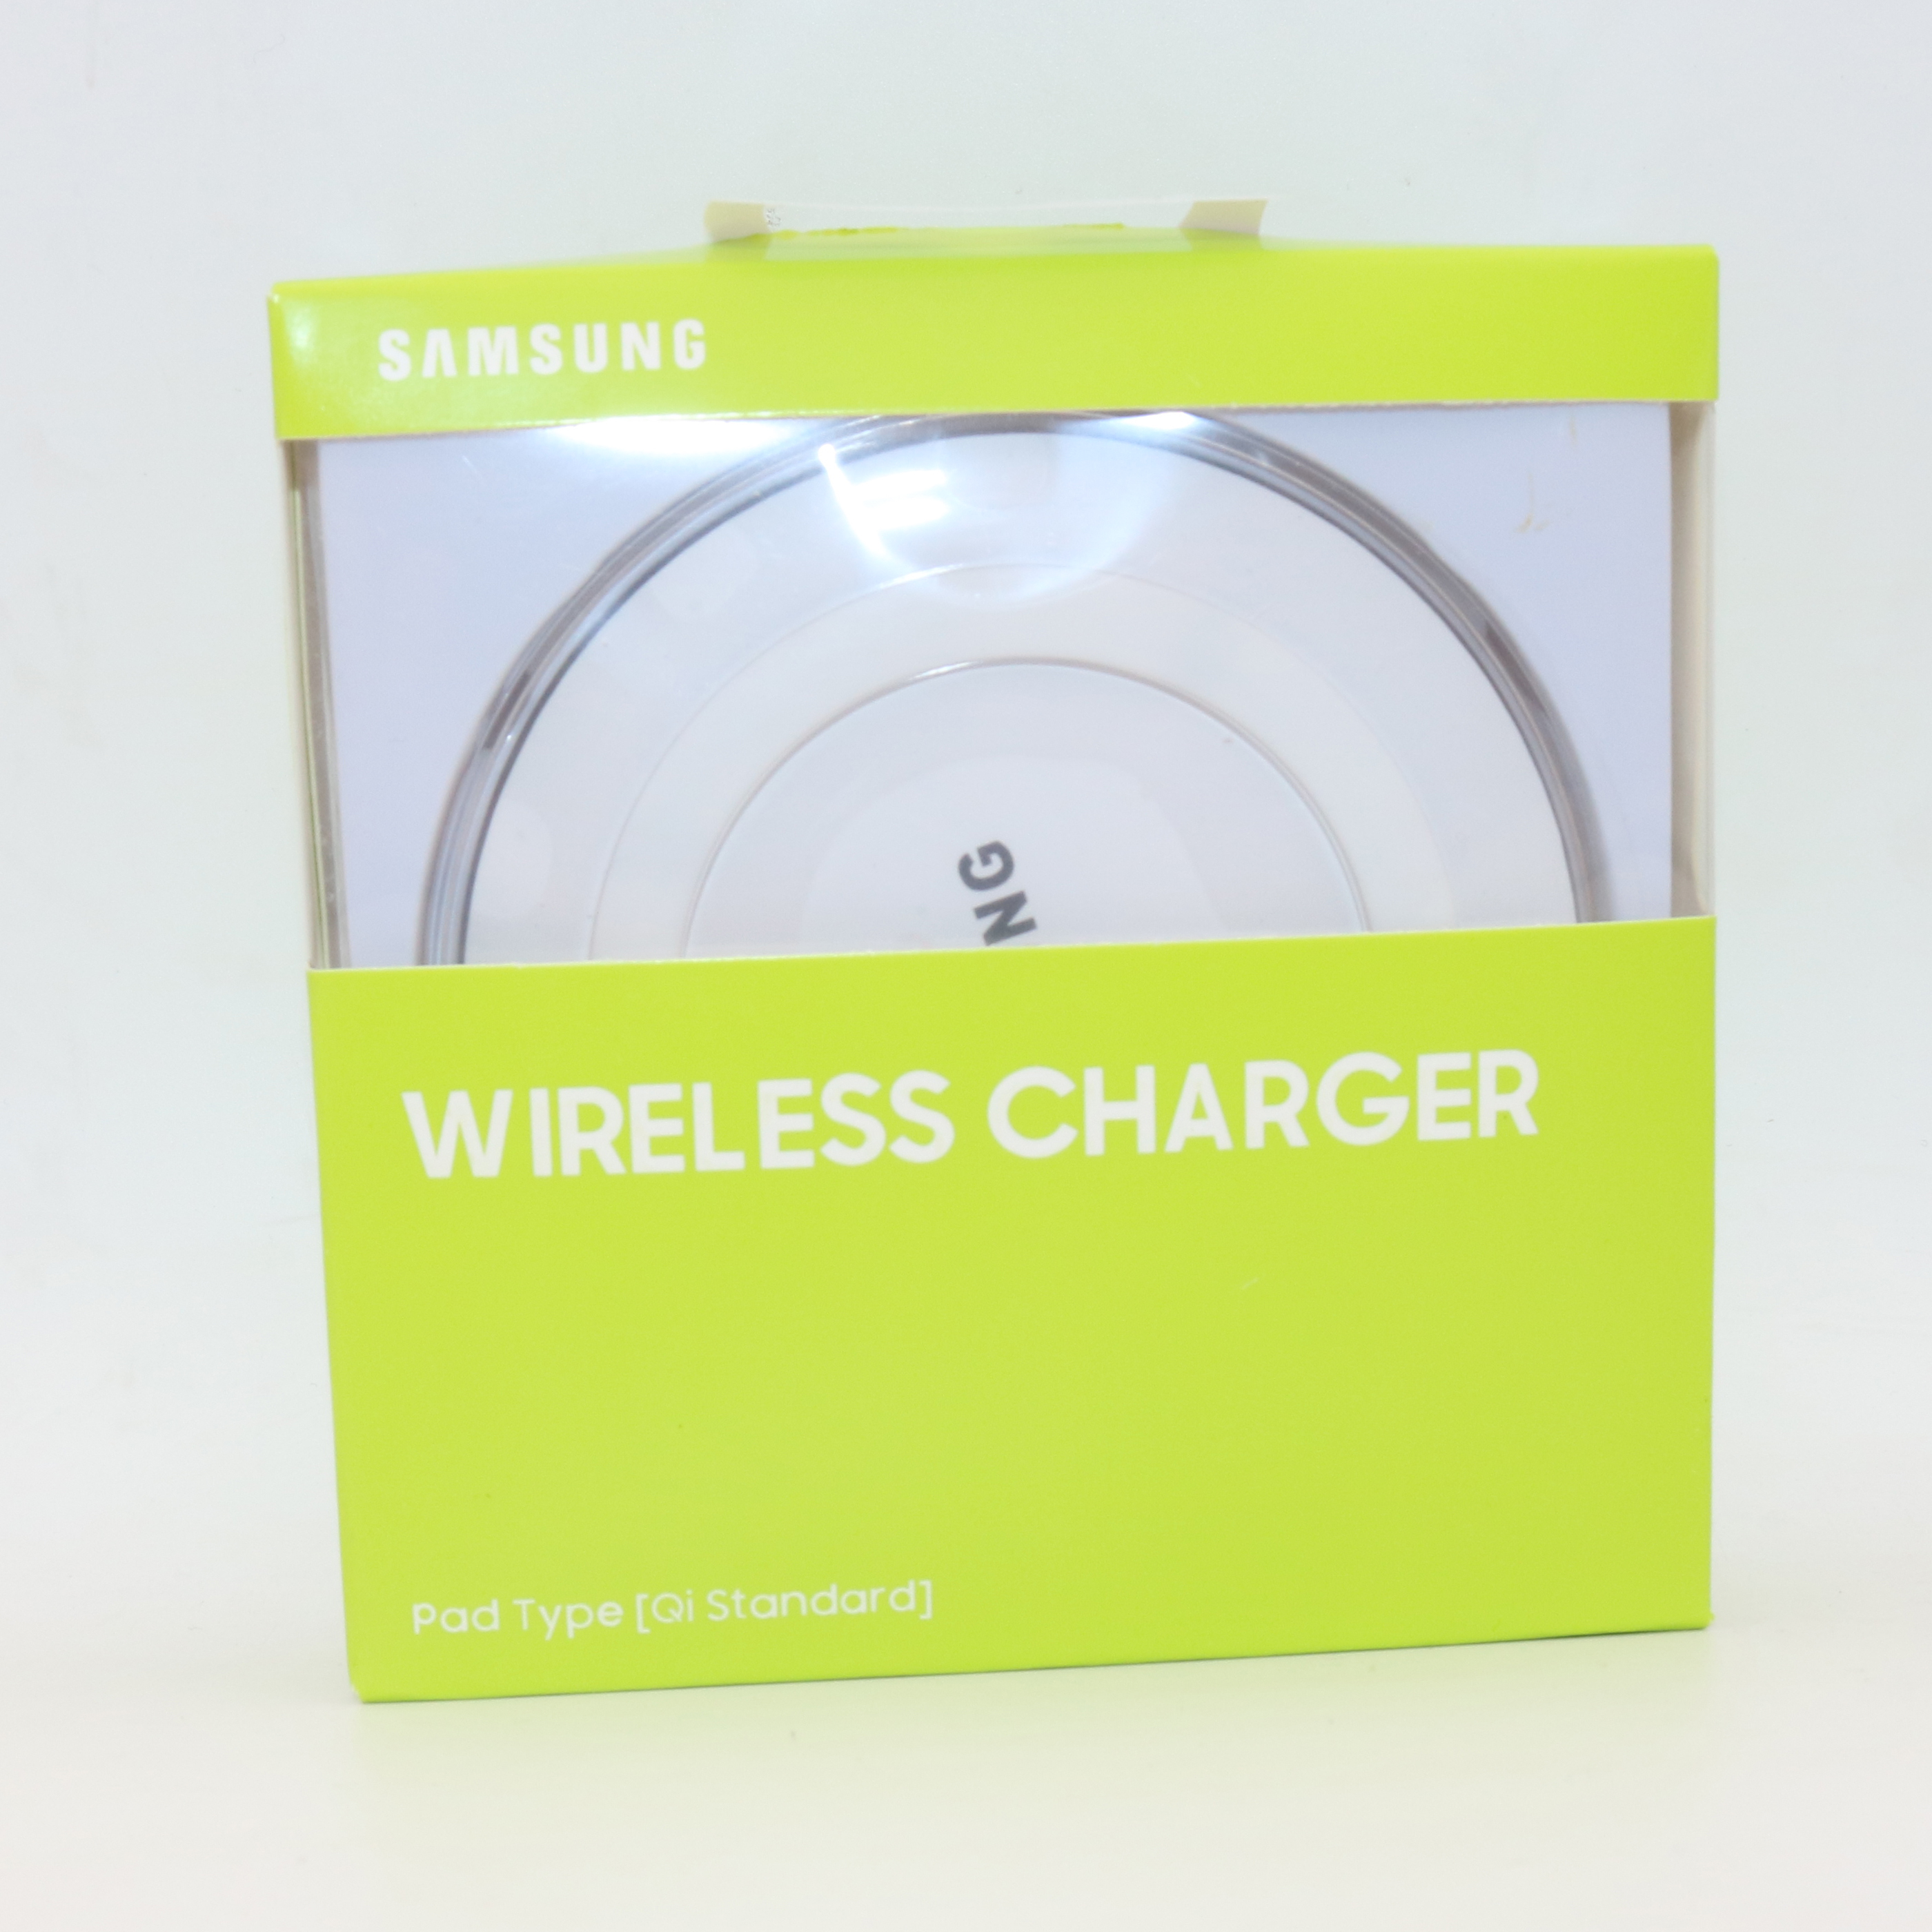 Image 5 - Original Samsung QI Wireless Charger Adapter 5V/2A Charger Pad For Galaxy S7 S6 EDGE S8 S9 S10 Plus Note 4 5 for Iphone 8 XS XR-in Mobile Phone Chargers from Cellphones & Telecommunications on